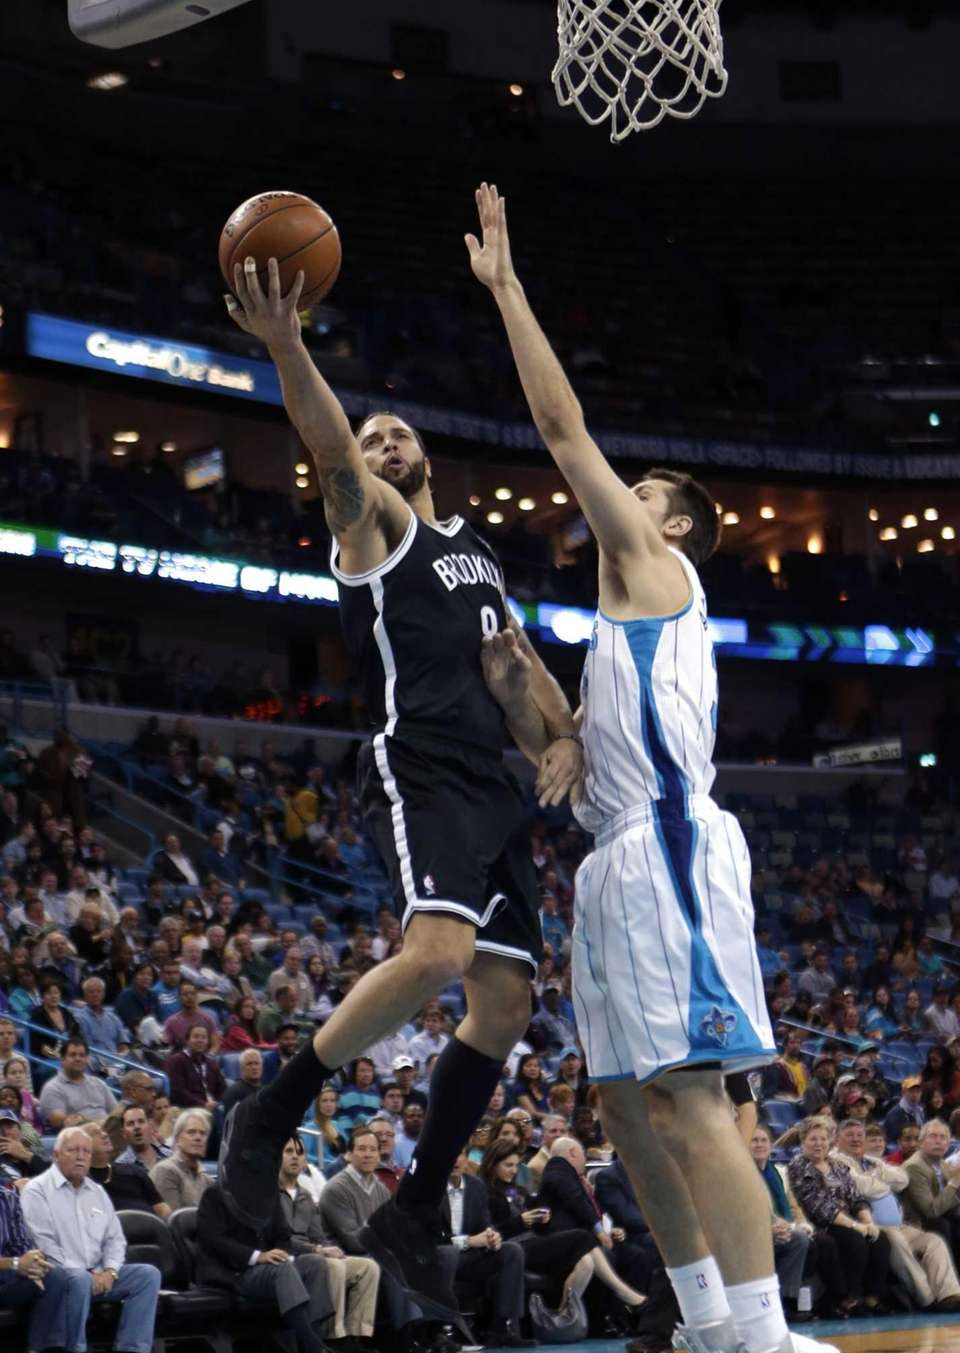 Nets guard Deron Williams drives to the basket